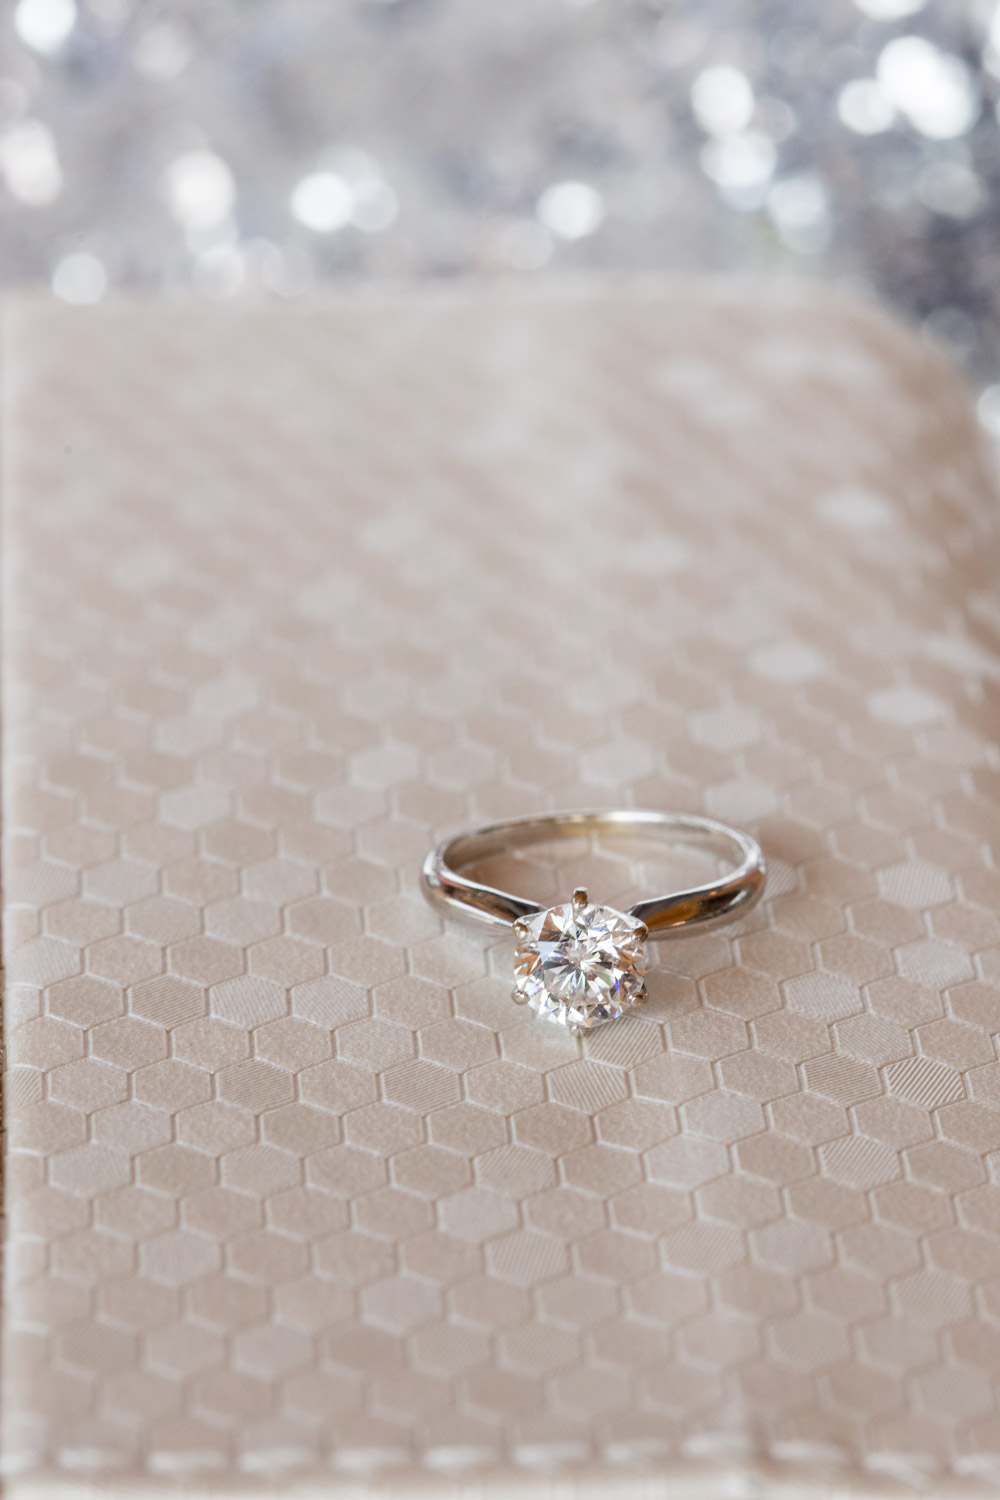 Solitaire diamond engagement ring in round, Cavin Elizabeth Photography